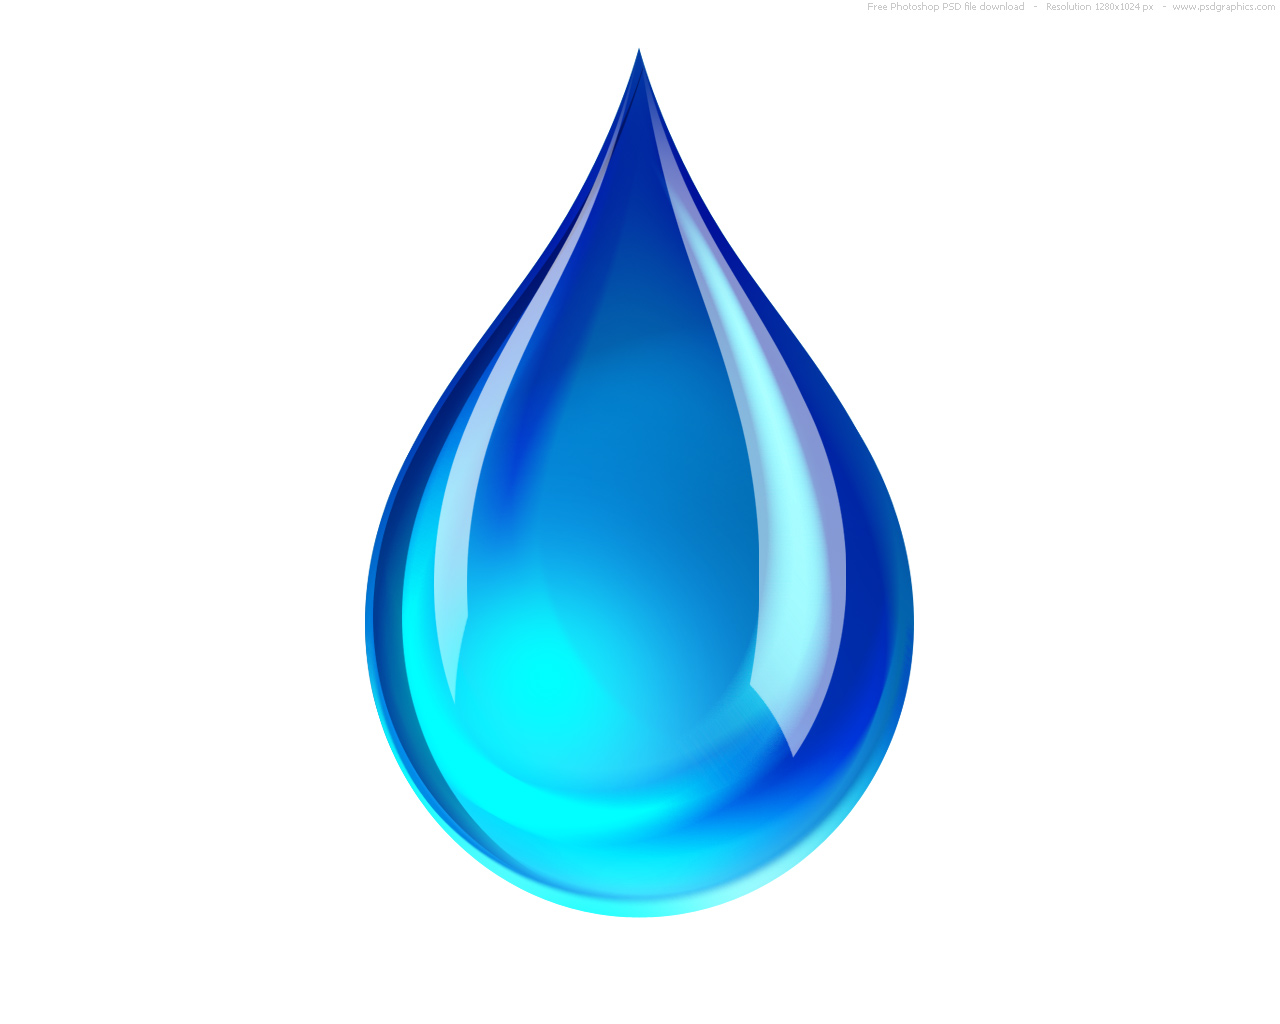 Psd Blue Water Droplet Icon Psdgraphics-Psd Blue Water Droplet Icon Psdgraphics-2